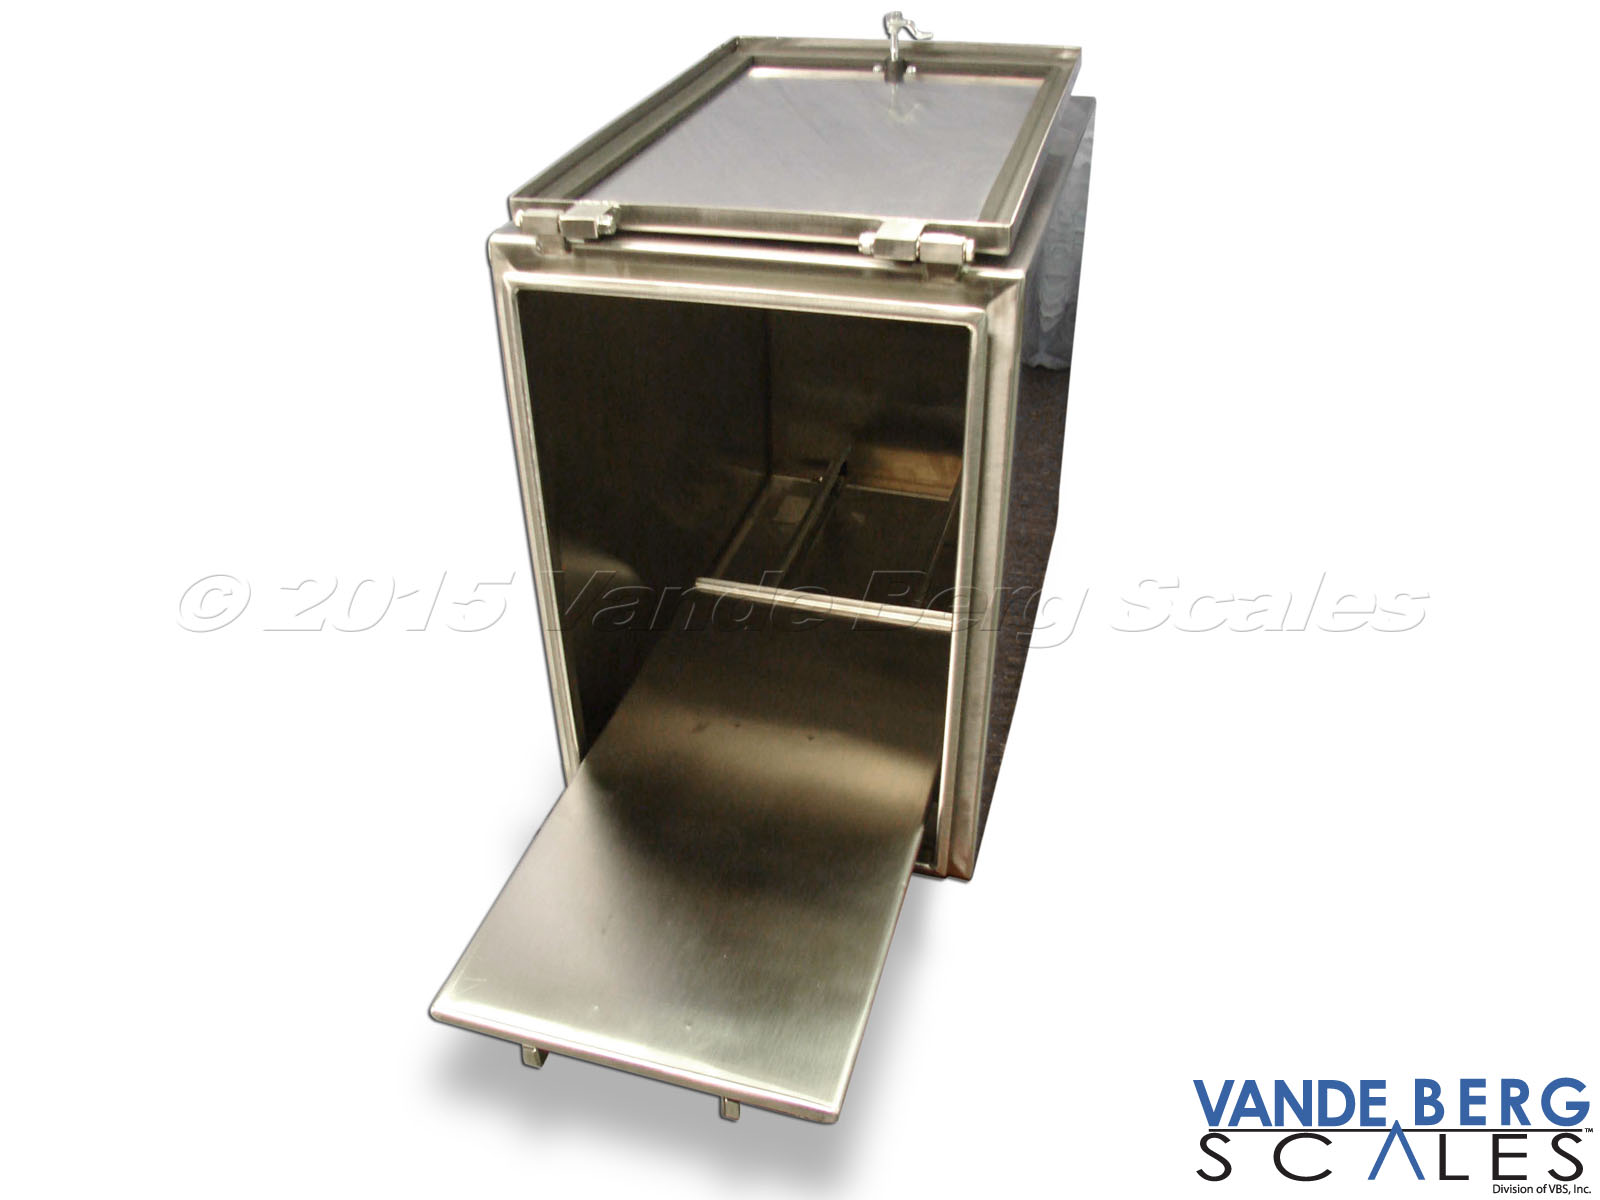 Stainless steel NEMA-4X printer enclosure with slide-out tray permits easy access to cables and label changeout